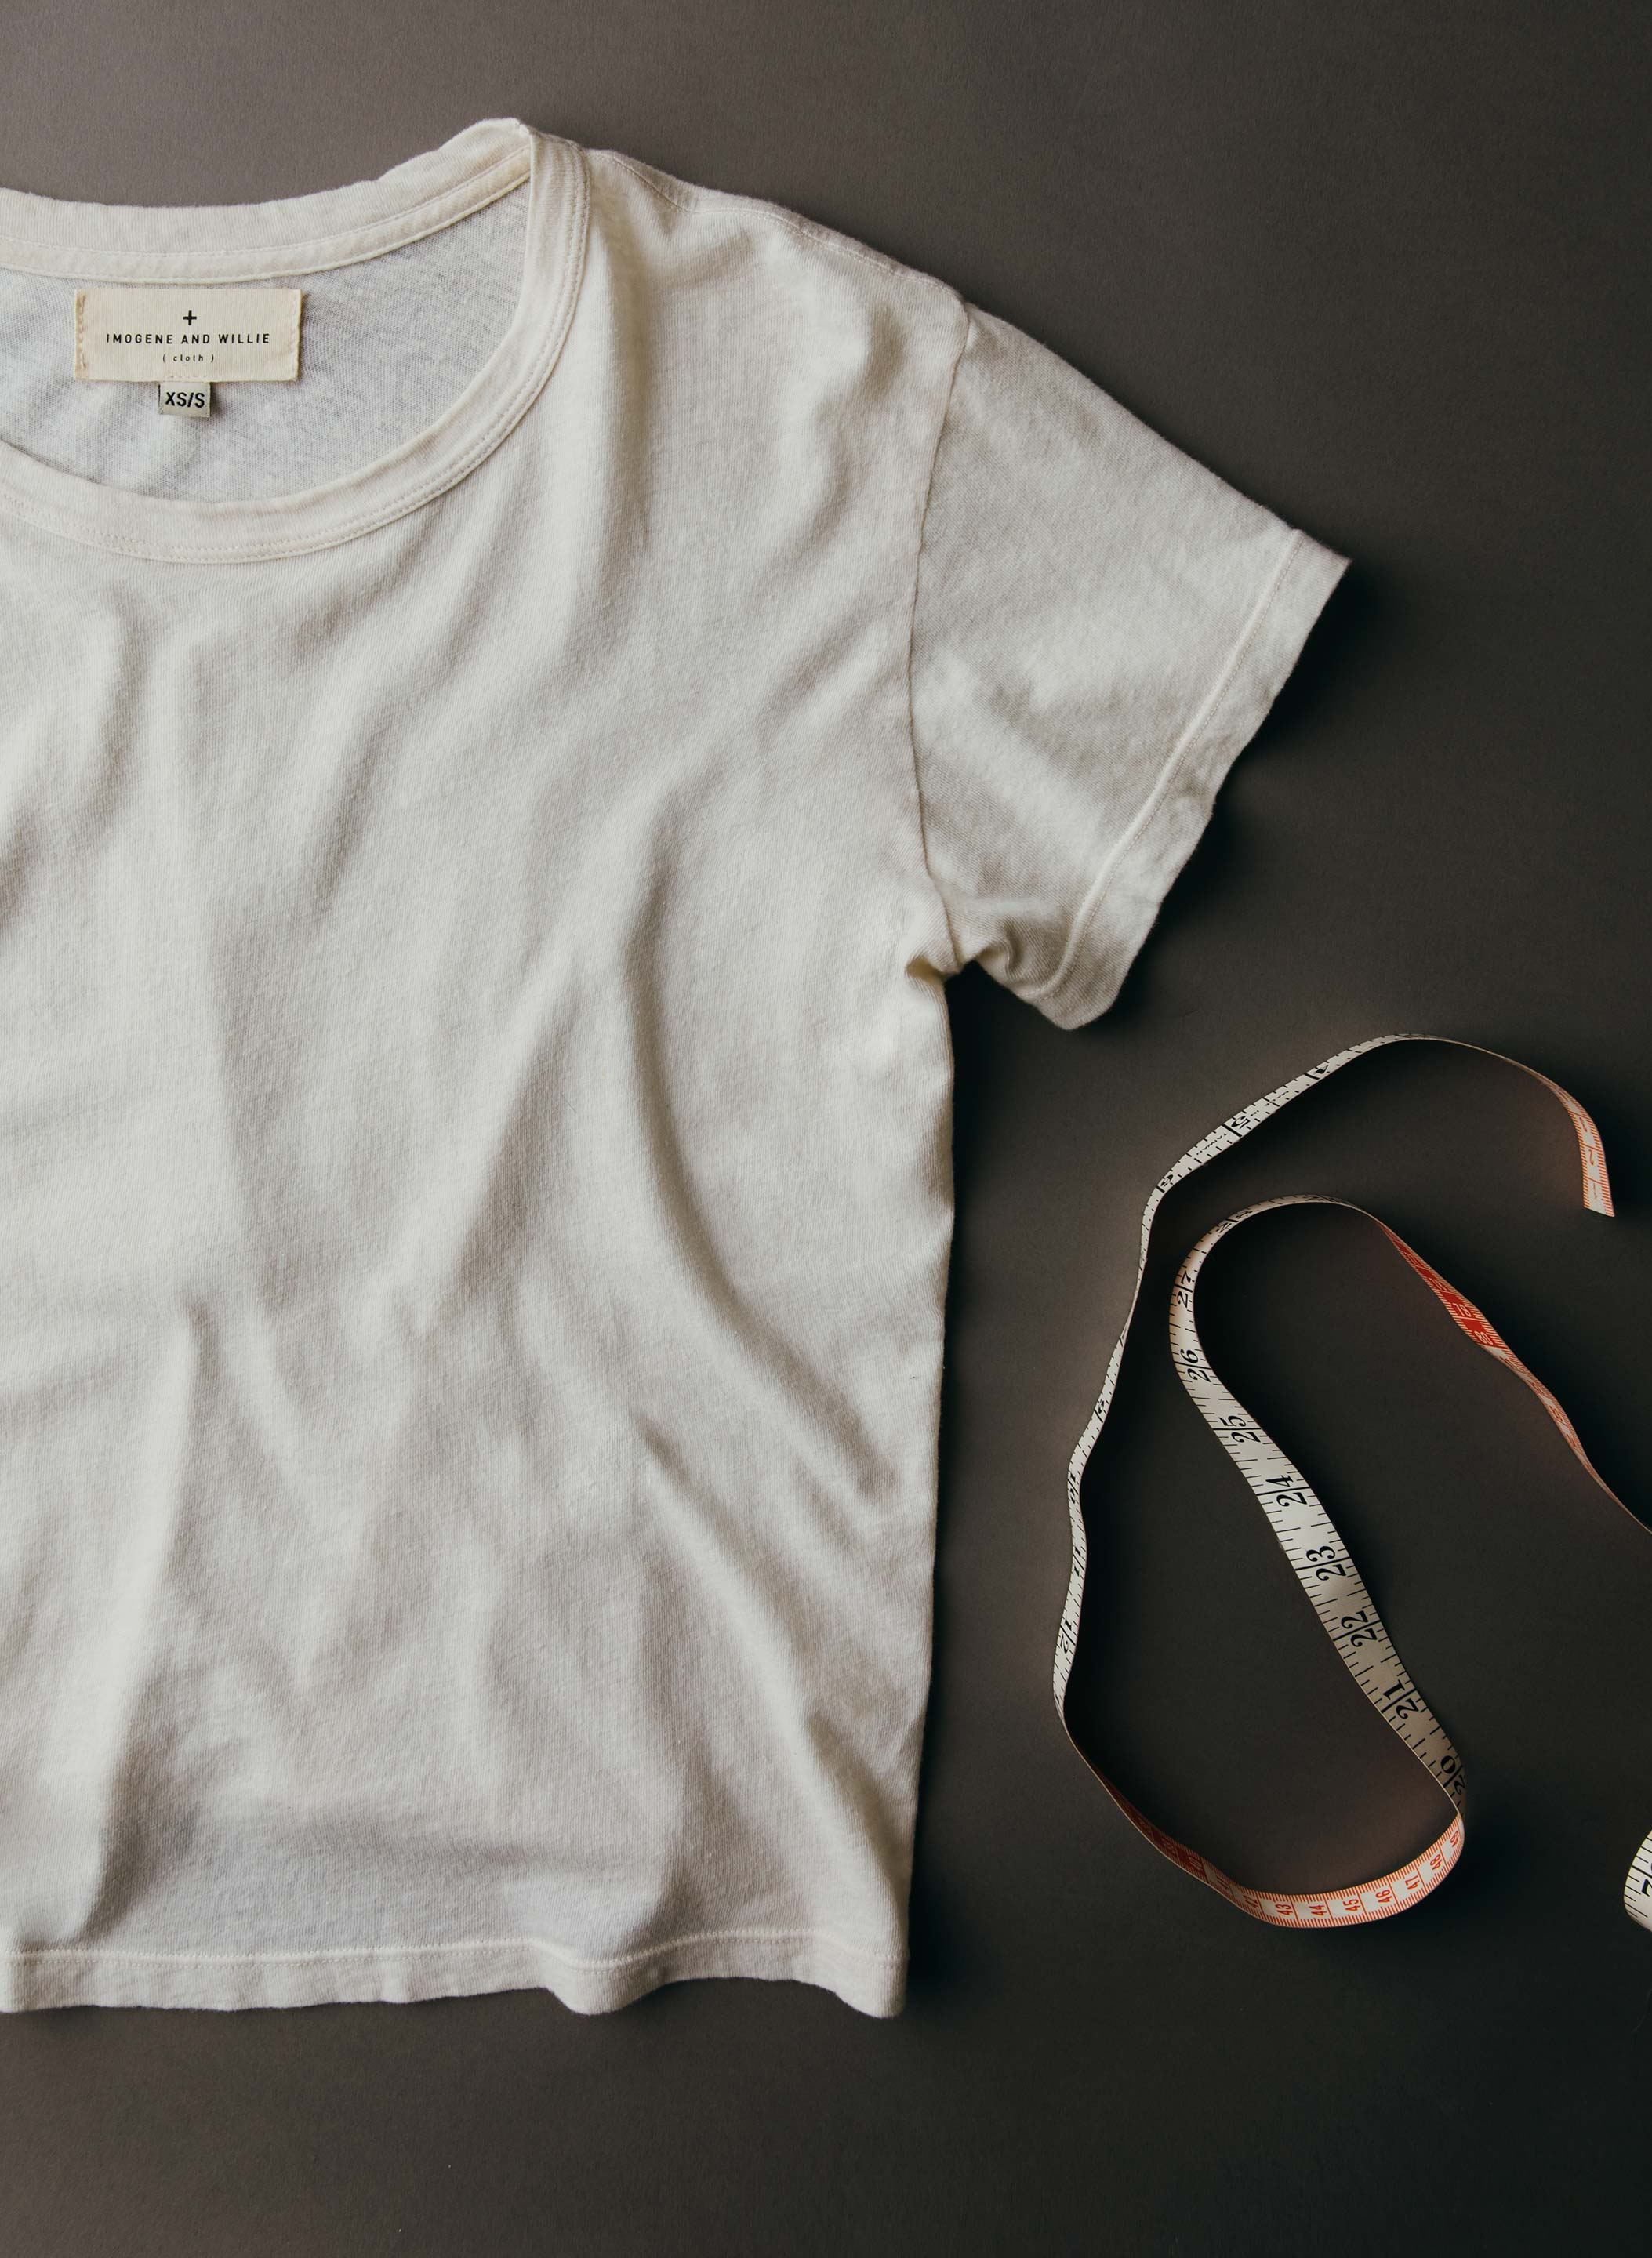 imogene + willie - the drop tee in vintage white